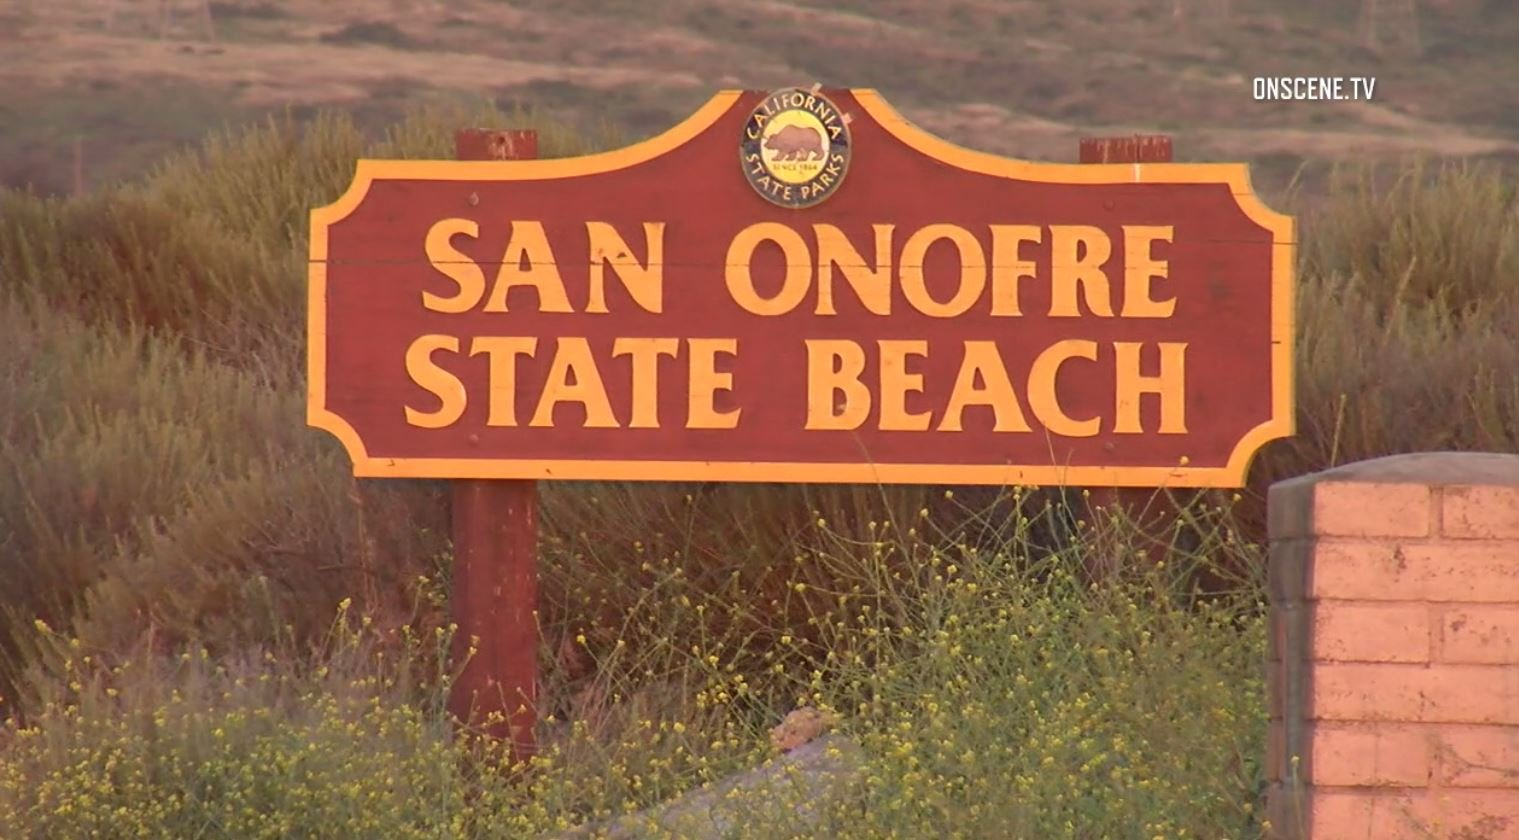 Victim airlifted to hospital following shark attack at North County beach